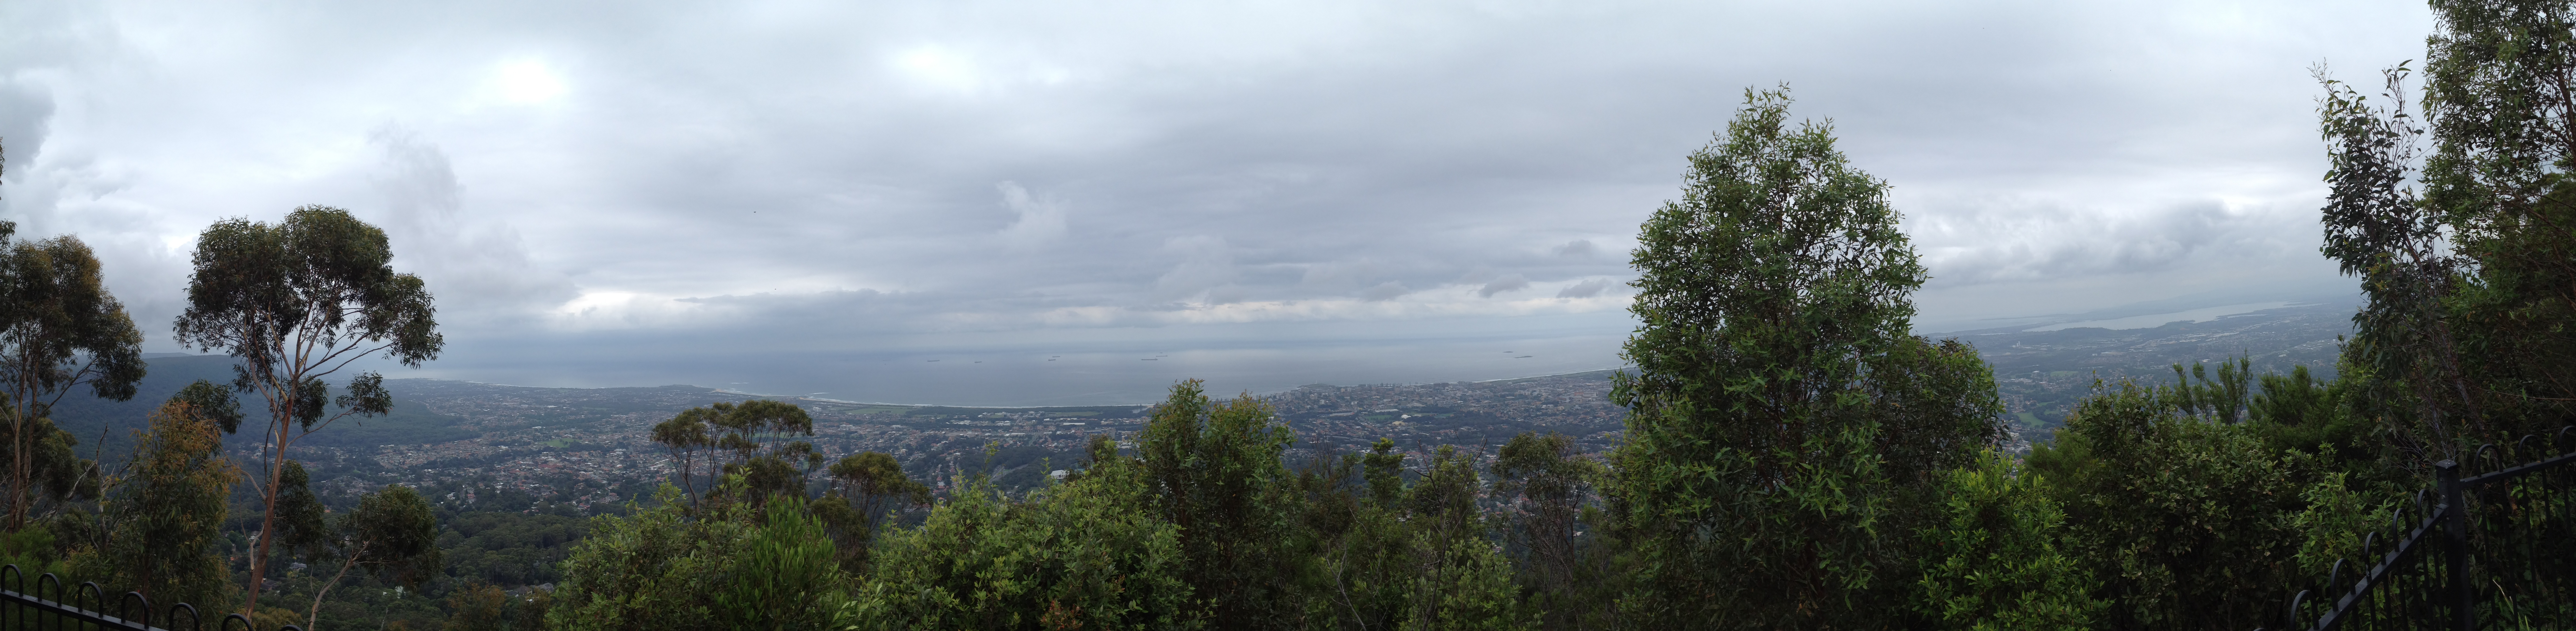 mount keira lookout - HD 9520×2332